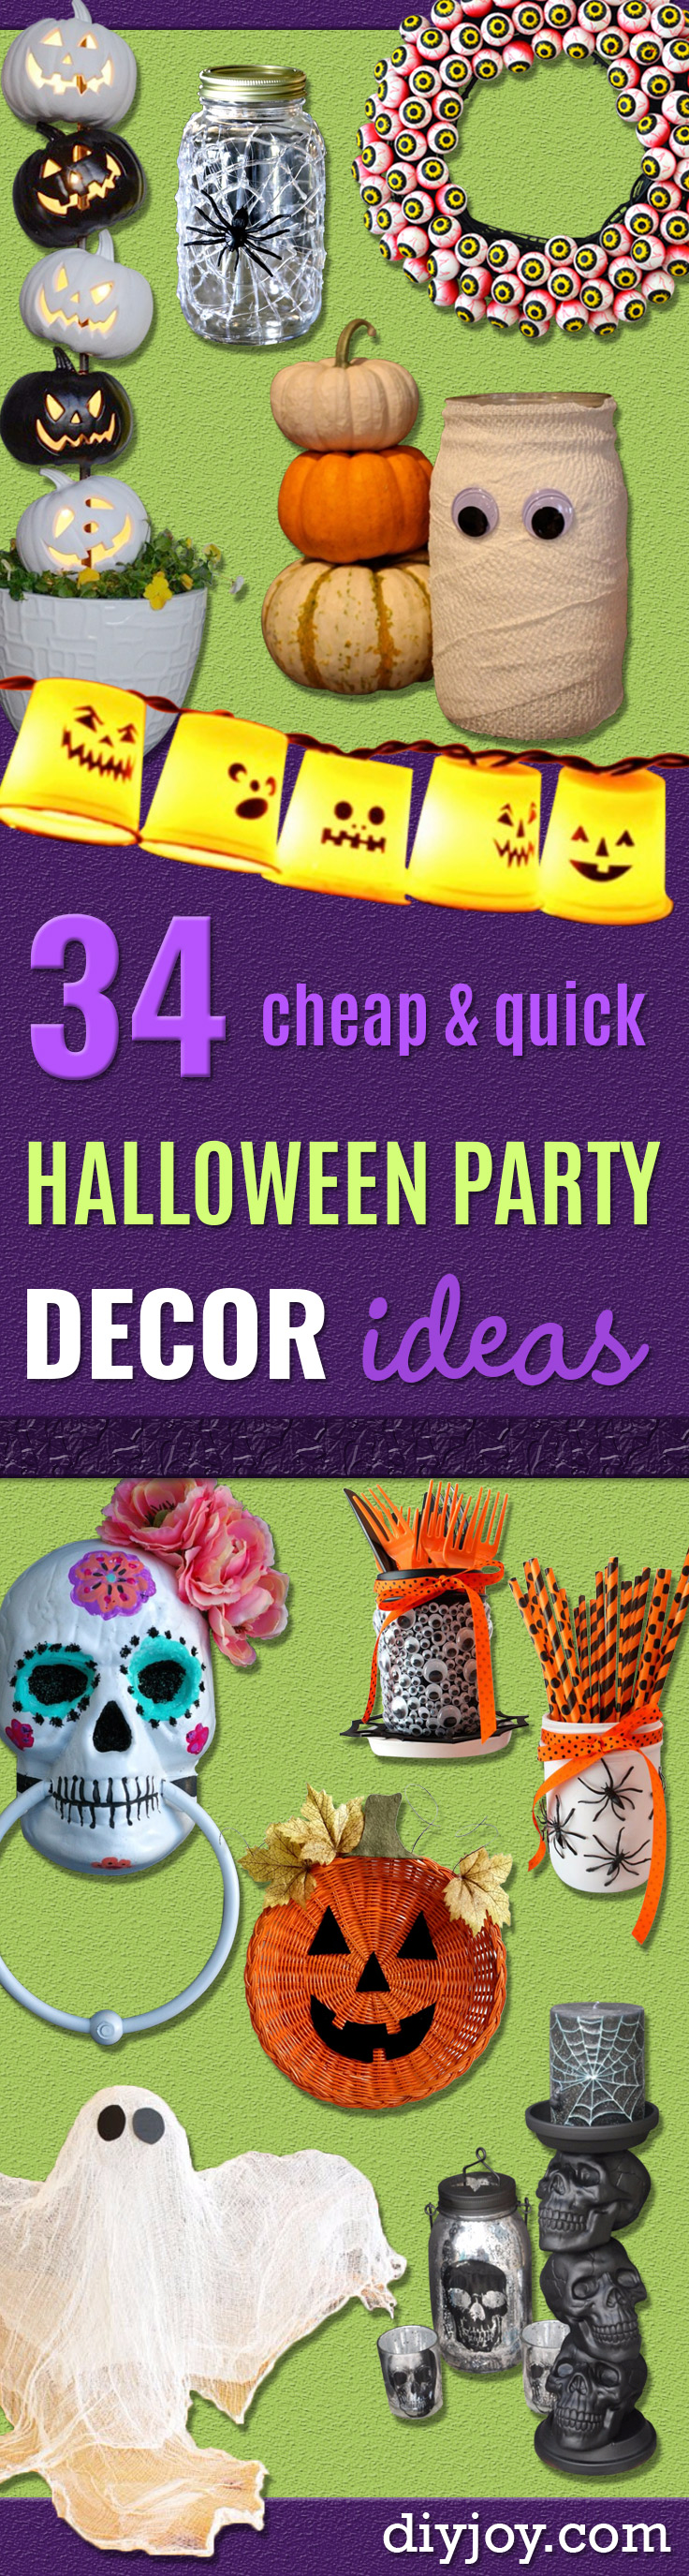 diy halloween decorations best easy cheap and quick halloween decor ideas and crafts for - Cheap Diy Halloween Decorations